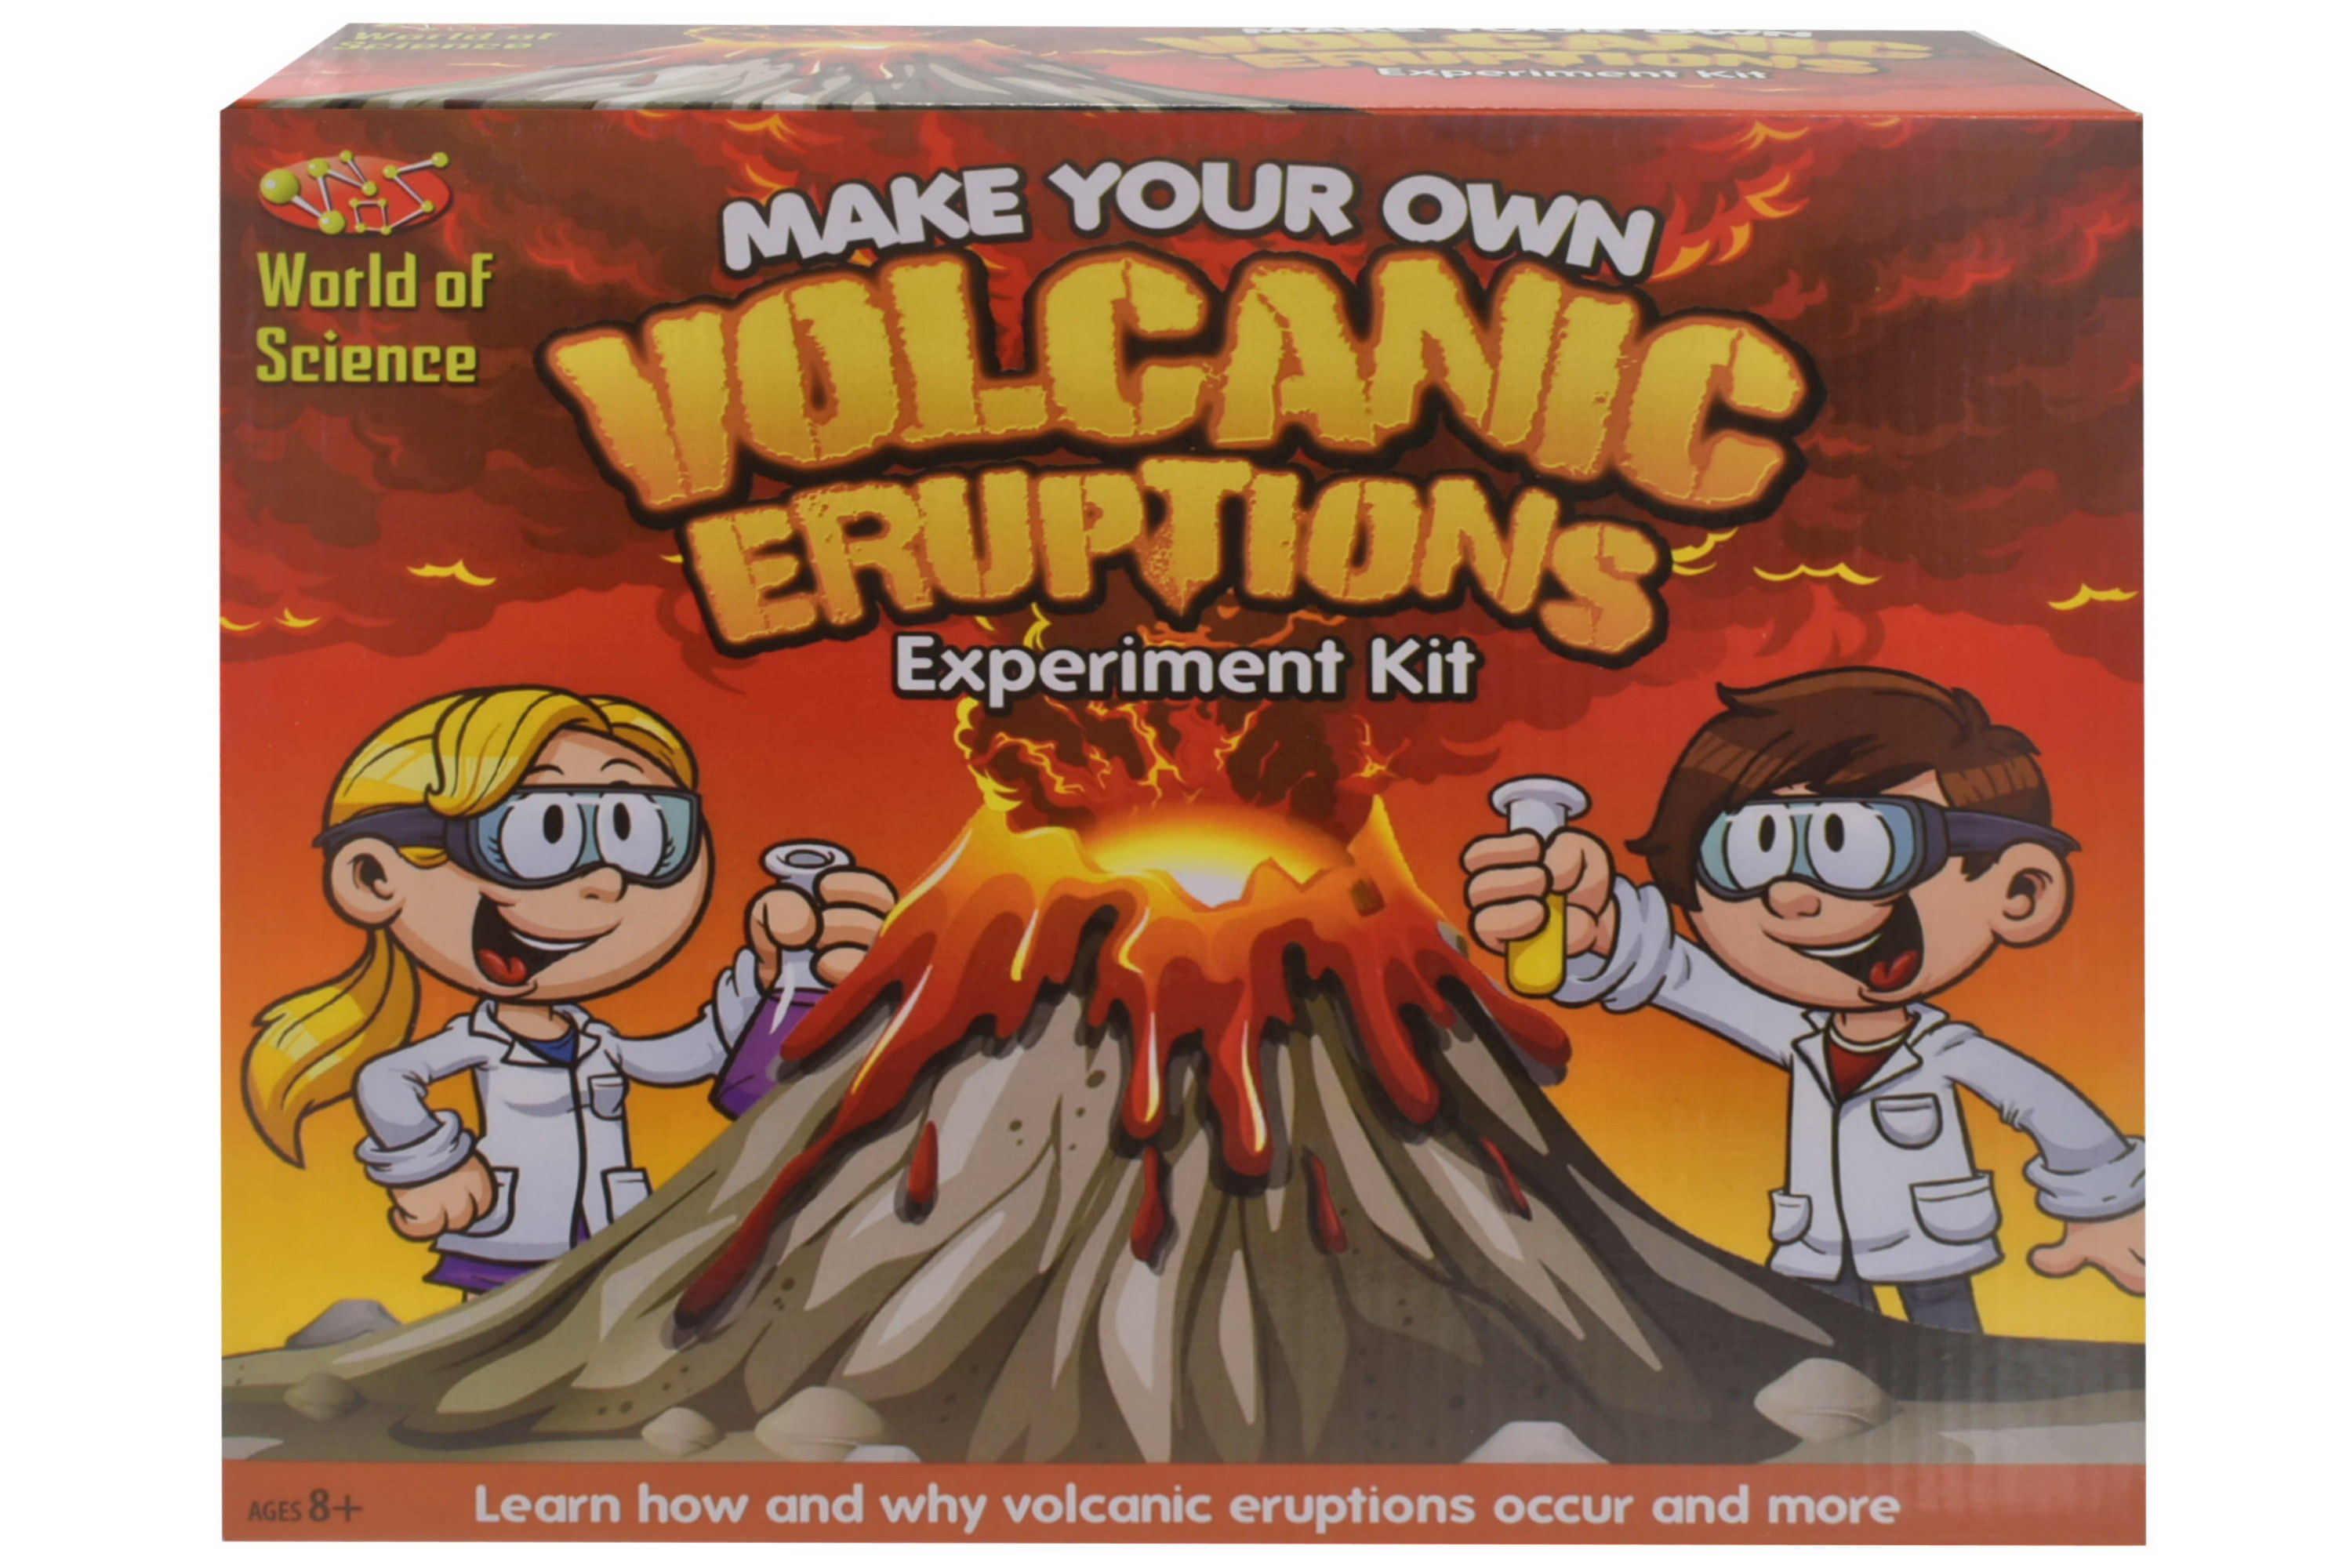 Make Your Own Volcanic Eruptions Experiment Kit